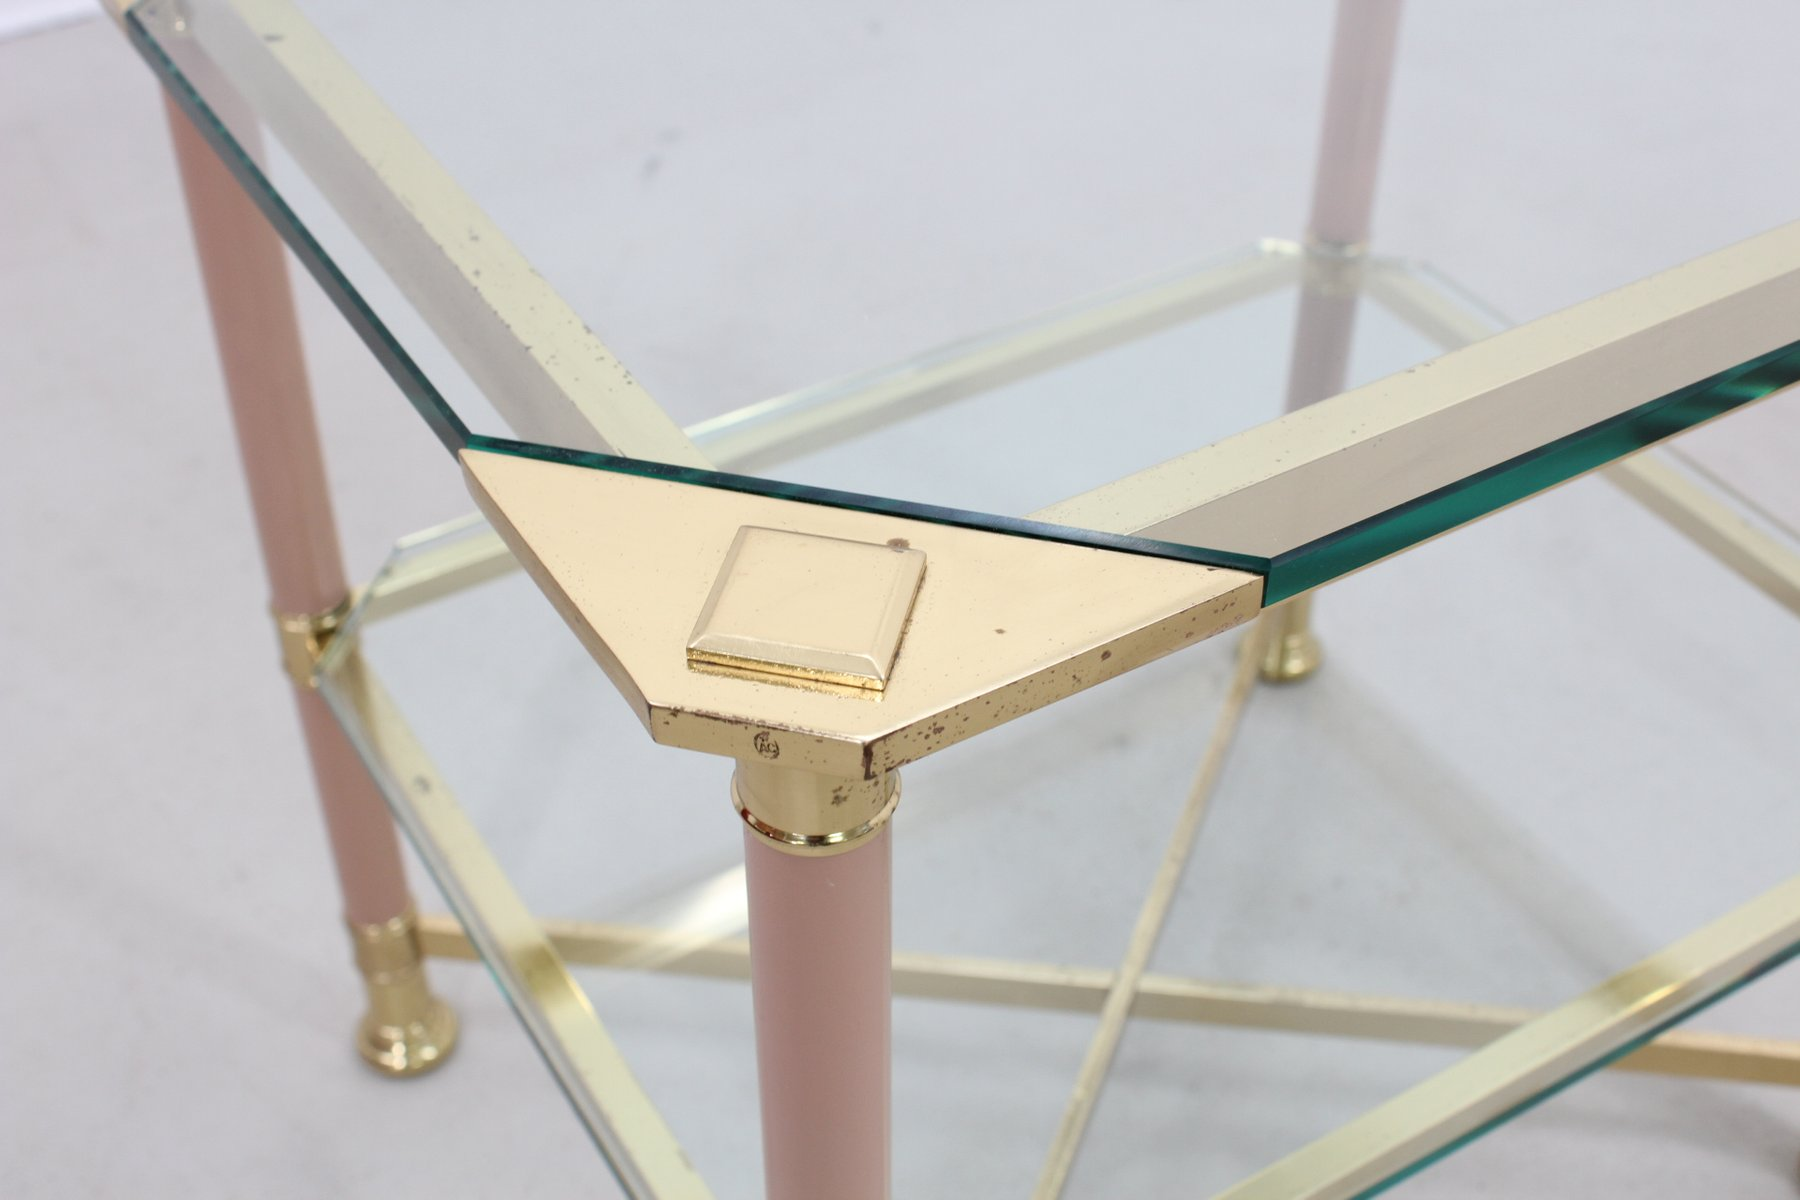 Italian Brass Coffee Table from Vivai del Sud 1960s for sale at